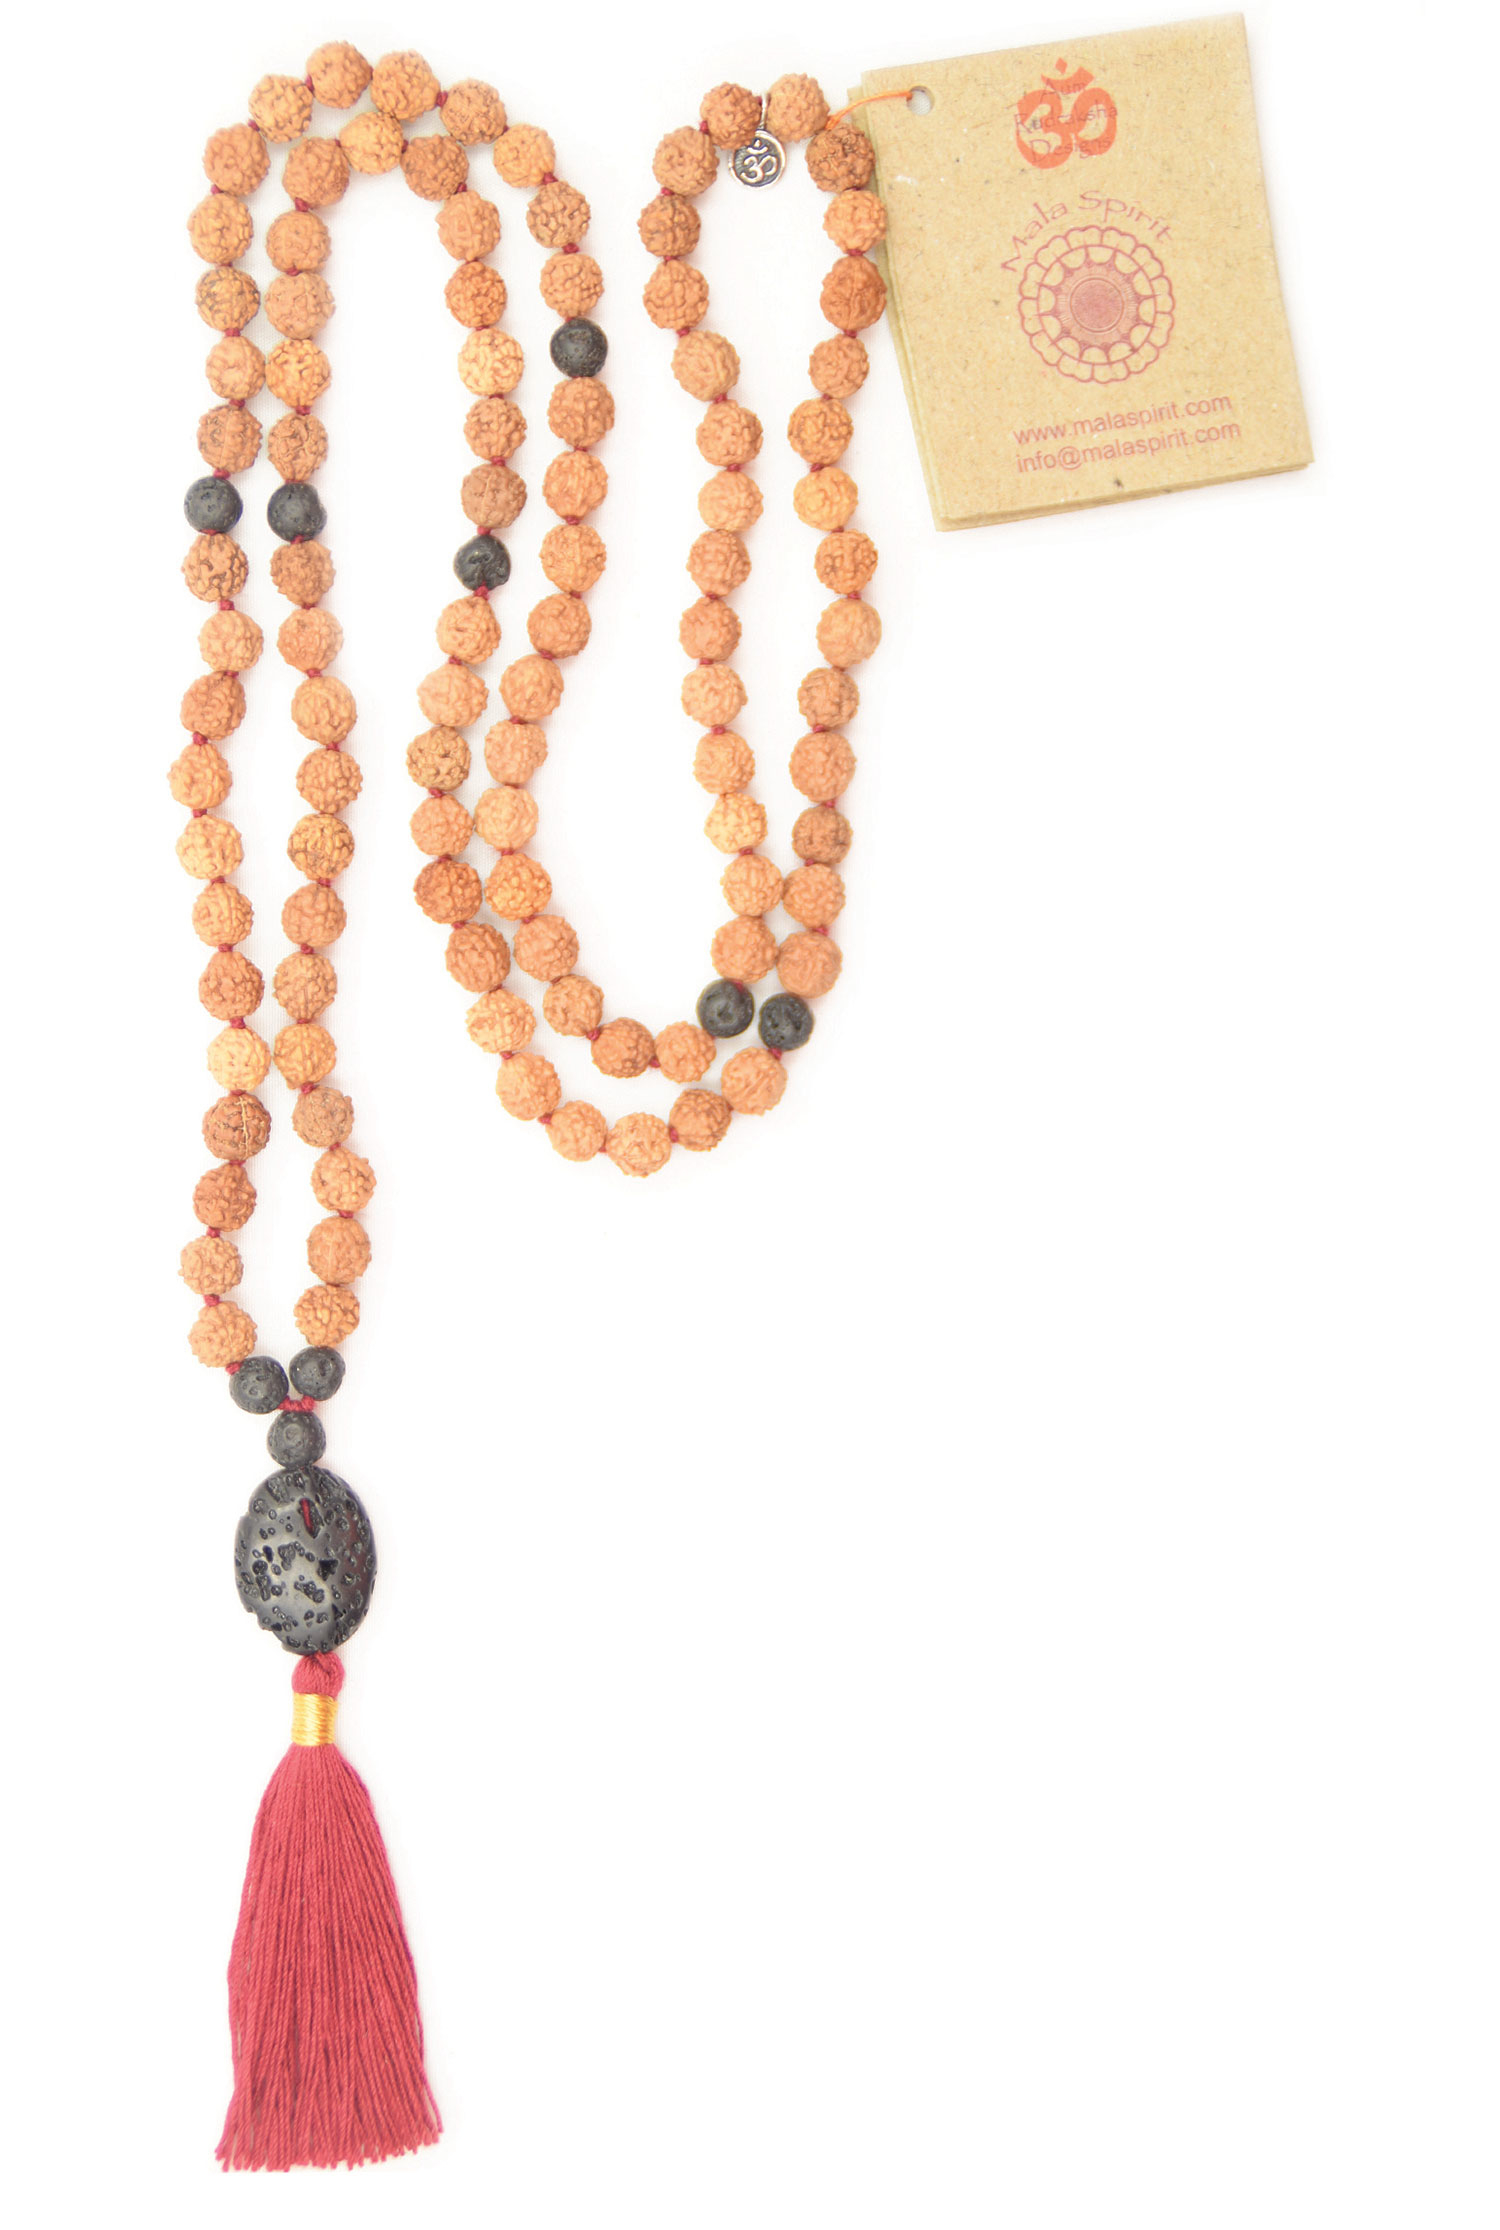 Inner Strength mala ketting